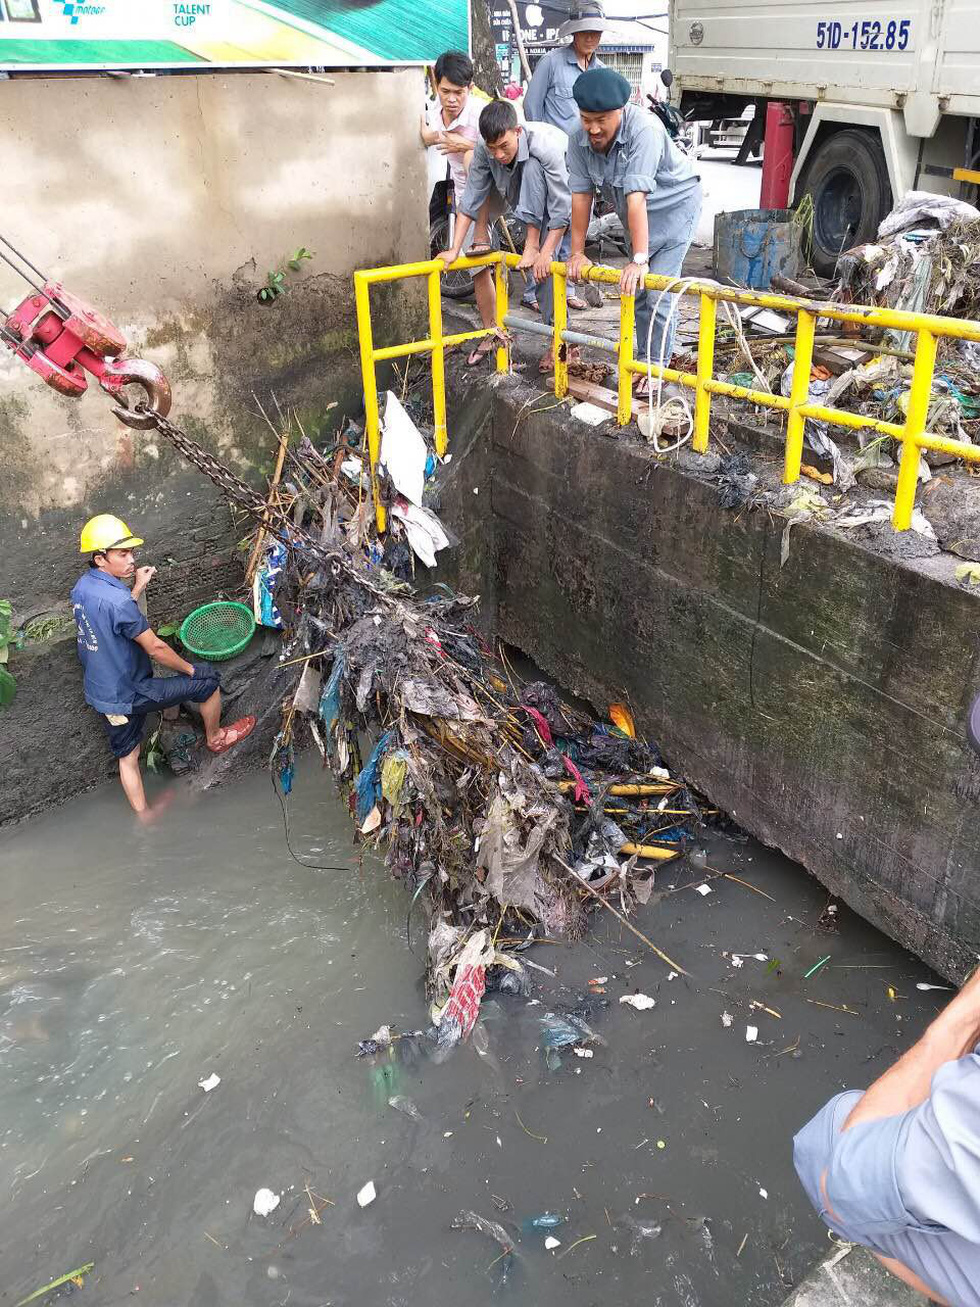 Competent authorities dredge a canal in Thu Duc District. Photo: Tuoi Tre